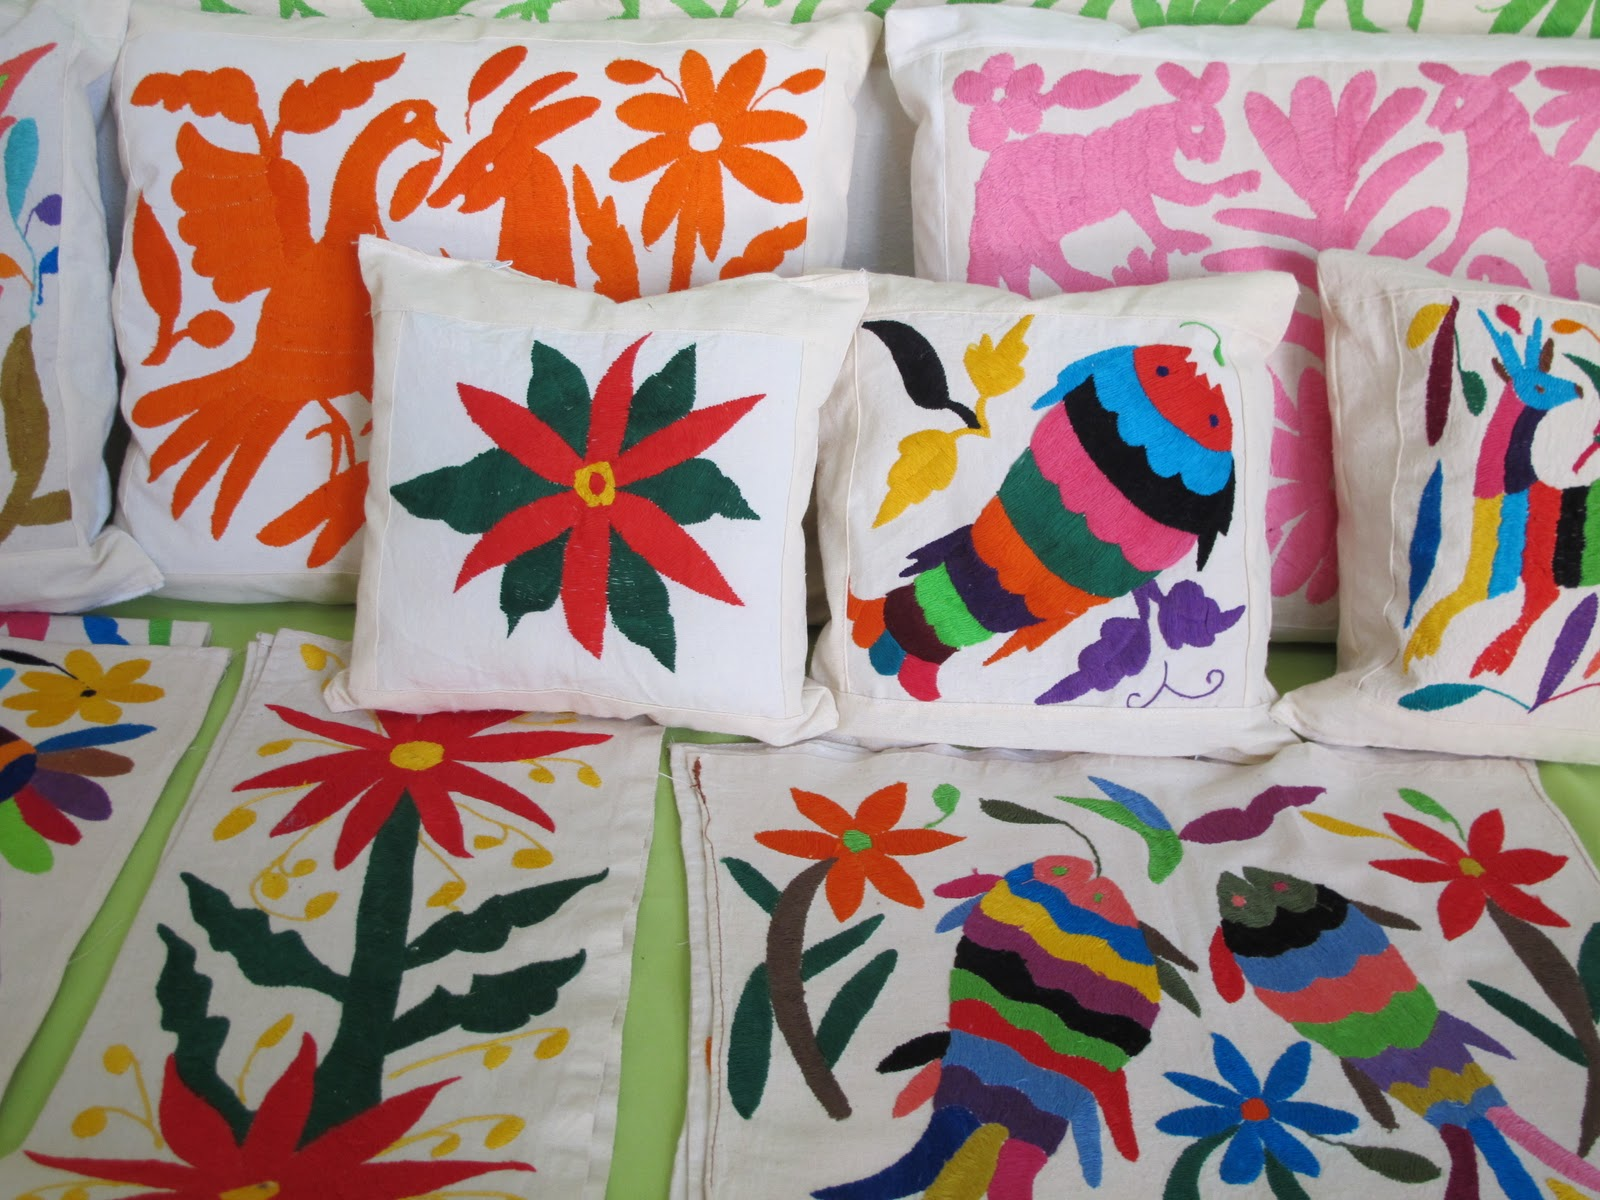 The Otomi villages in the state of Hidalgo in the Tenango de Doria region  are well known for their embroidered textiles. The designs are drawn on  muslin ...